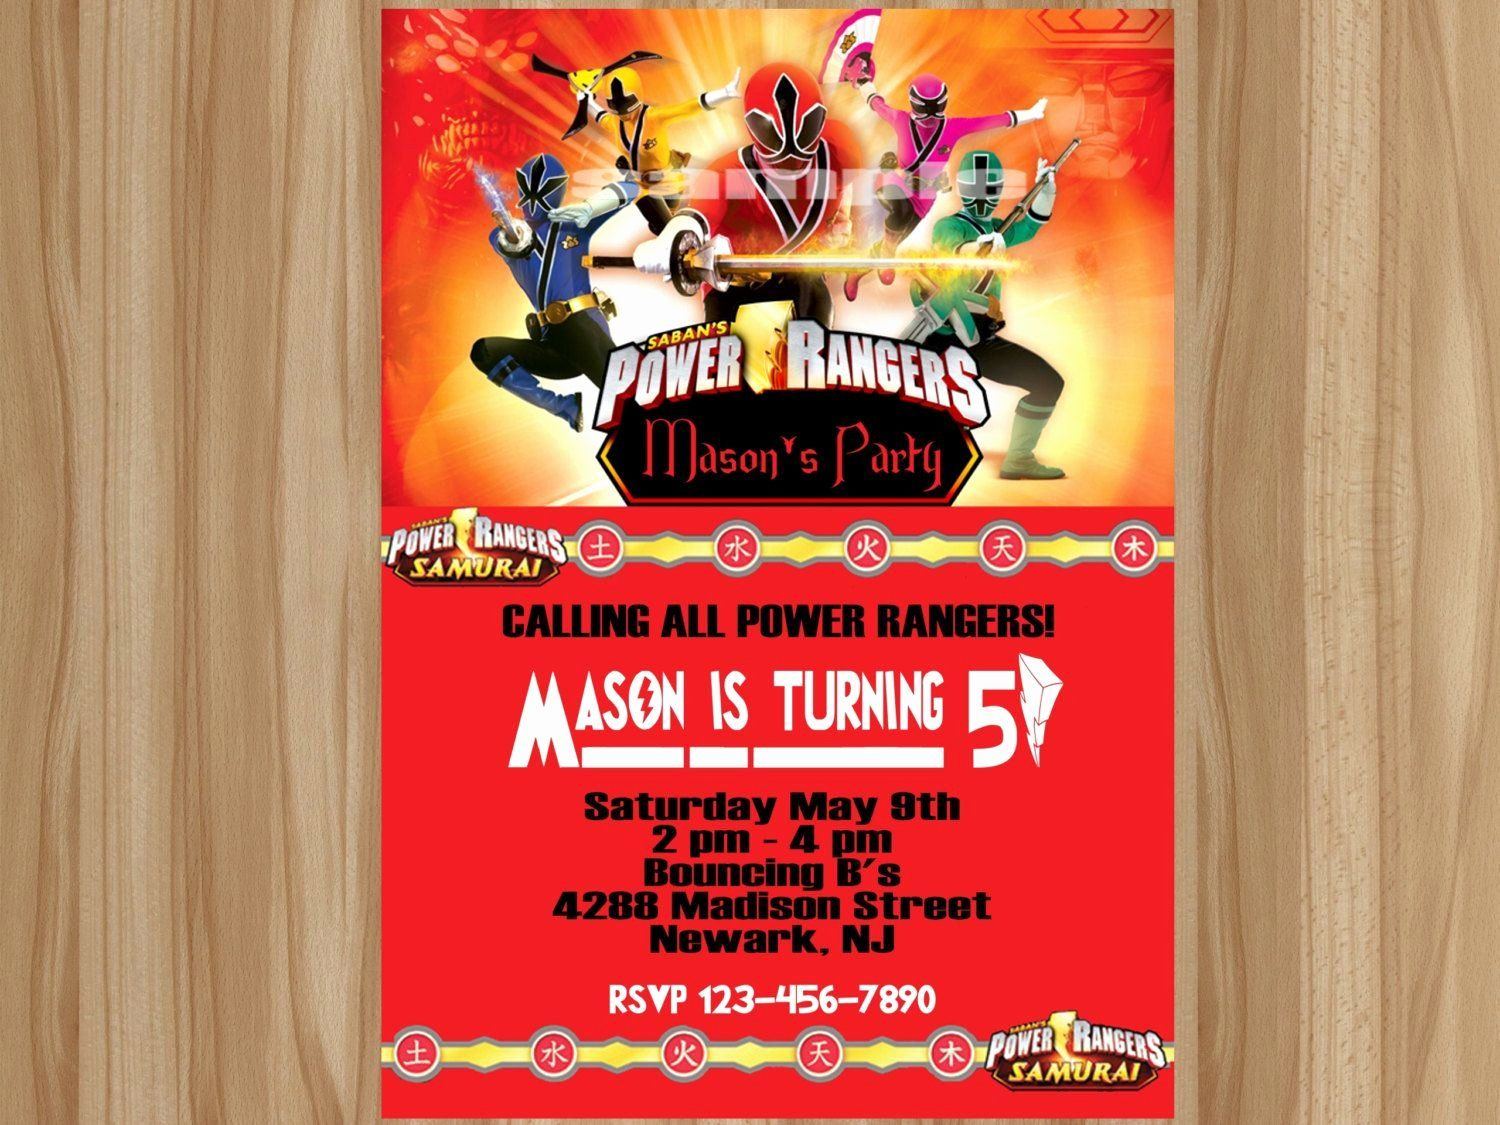 Power Rangers Birthday Invitation Template Fresh Awesome Power Ranger Birthday Invitat Power Ranger Birthday Birthday Invitations Birthday Invitation Templates